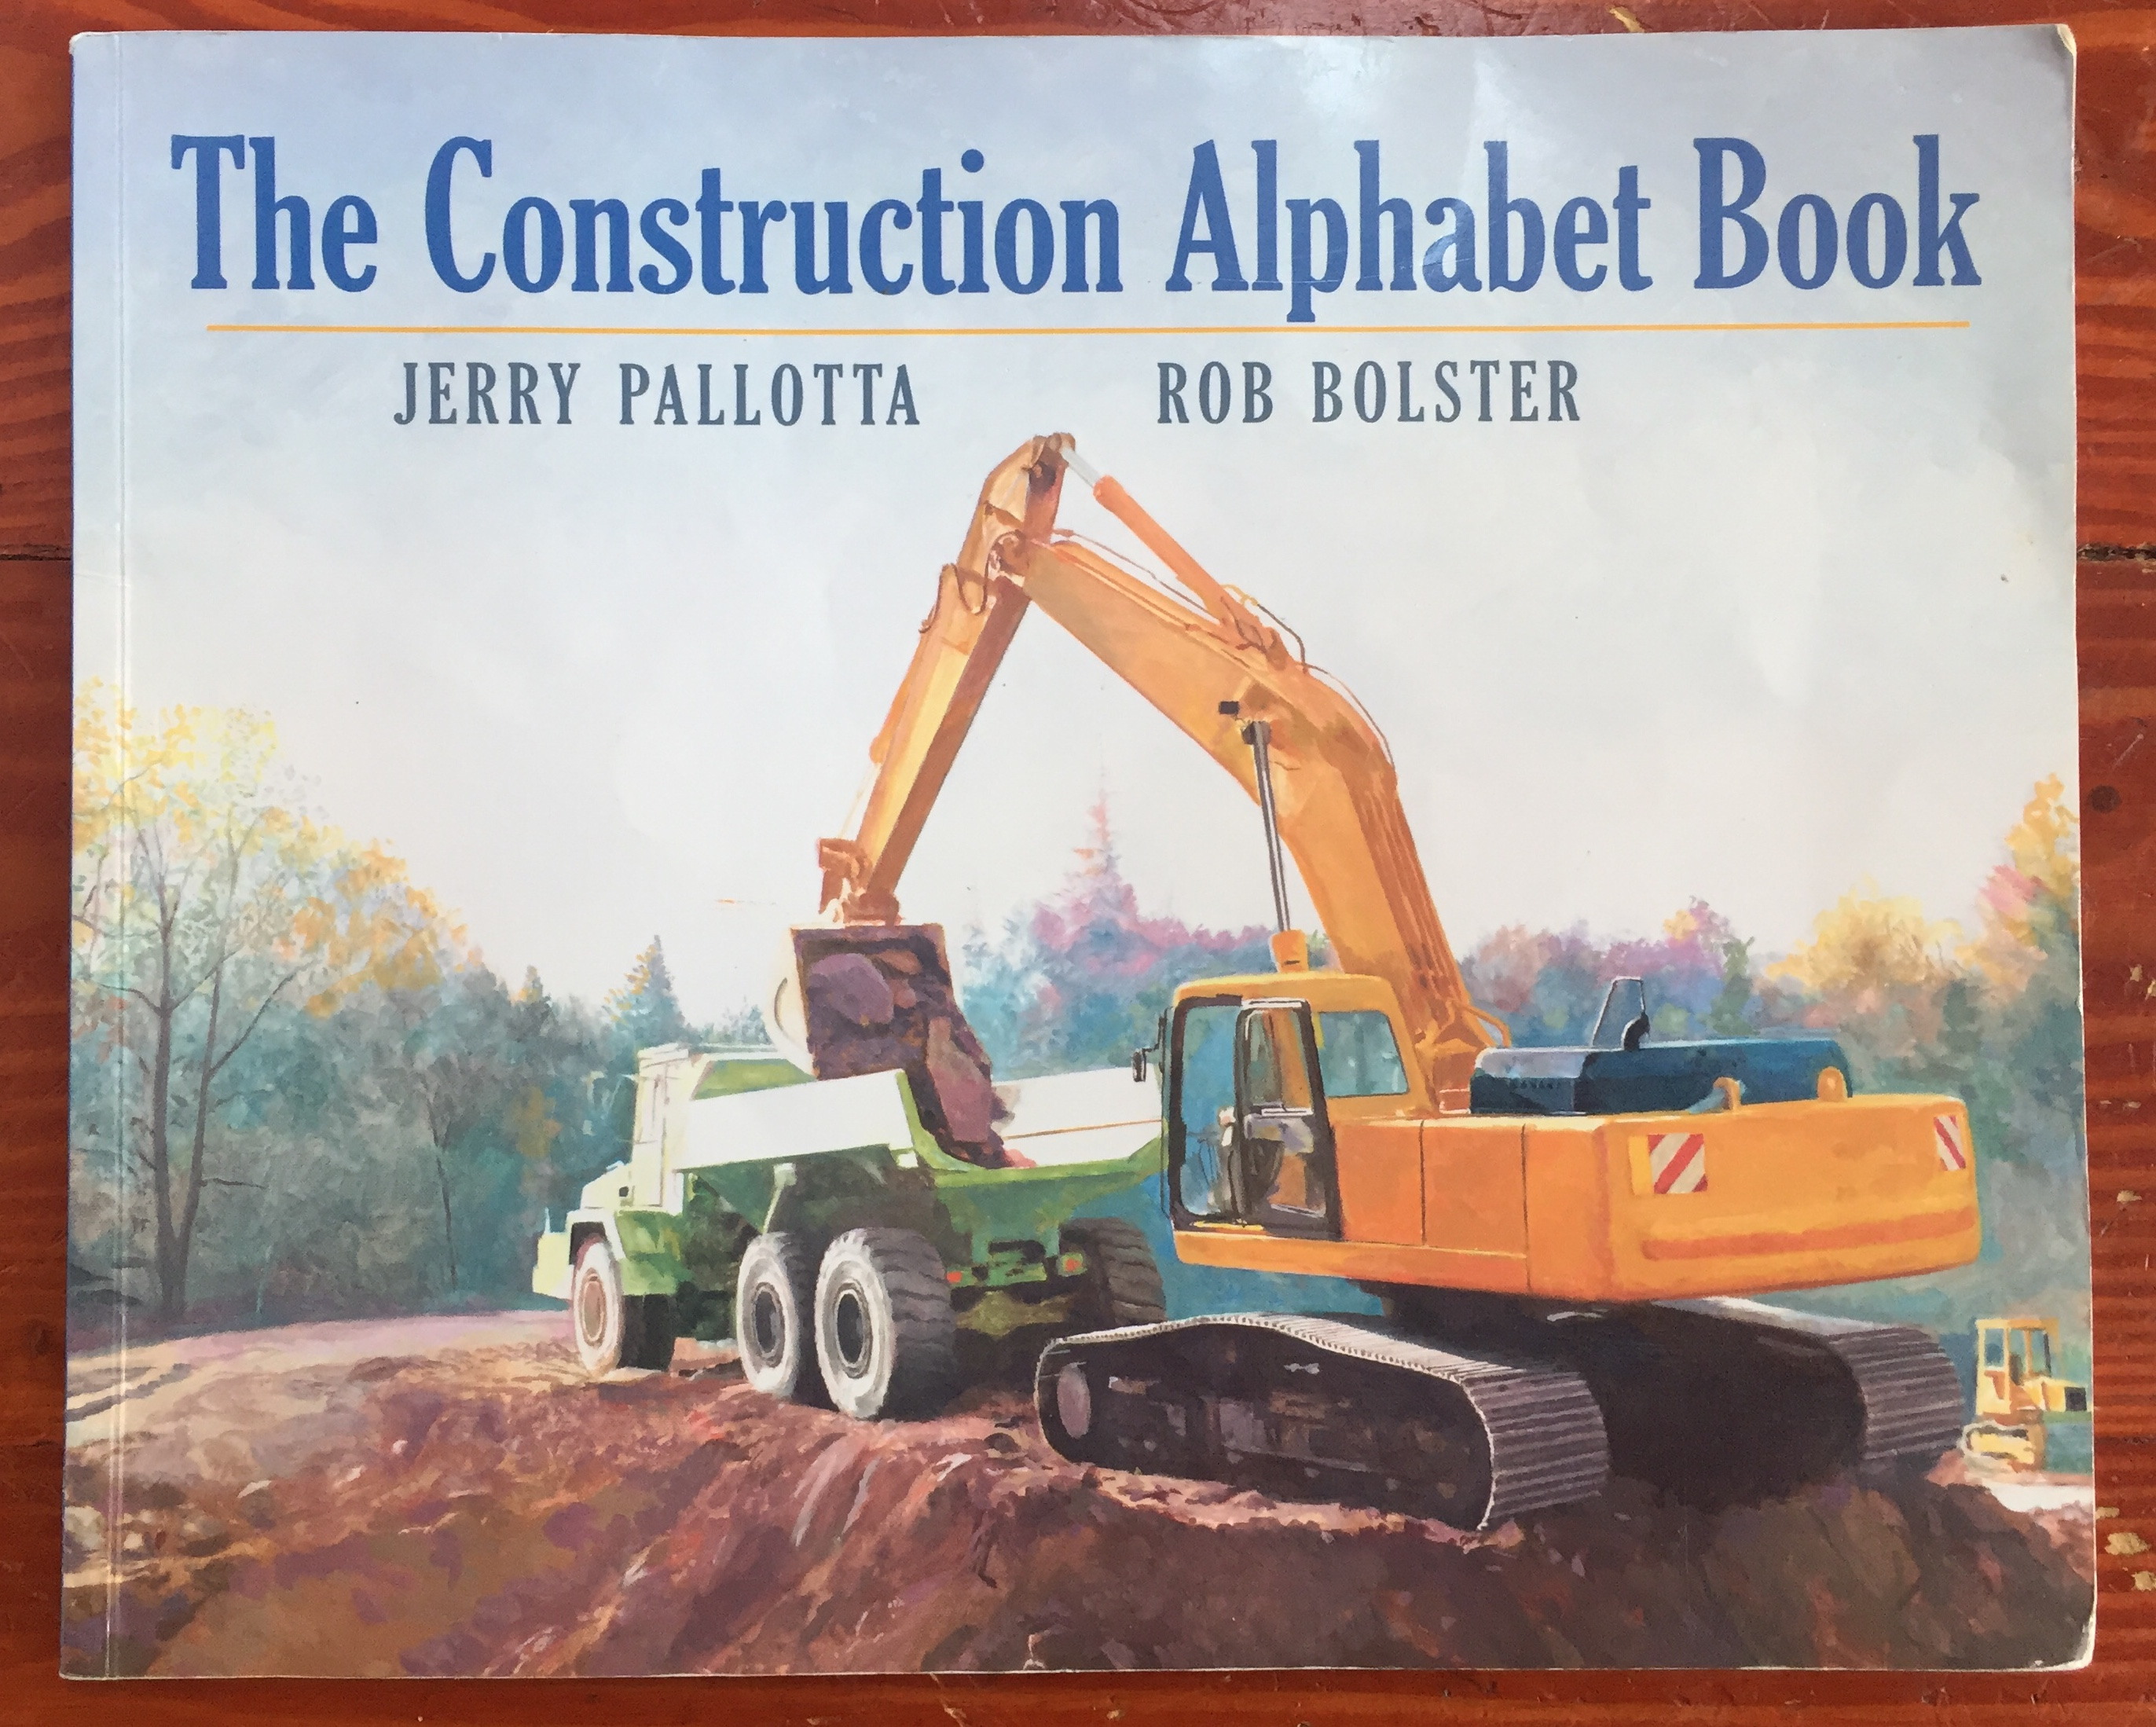 The Construction Alphabet Book by Jerry Pallotta picture book for kids